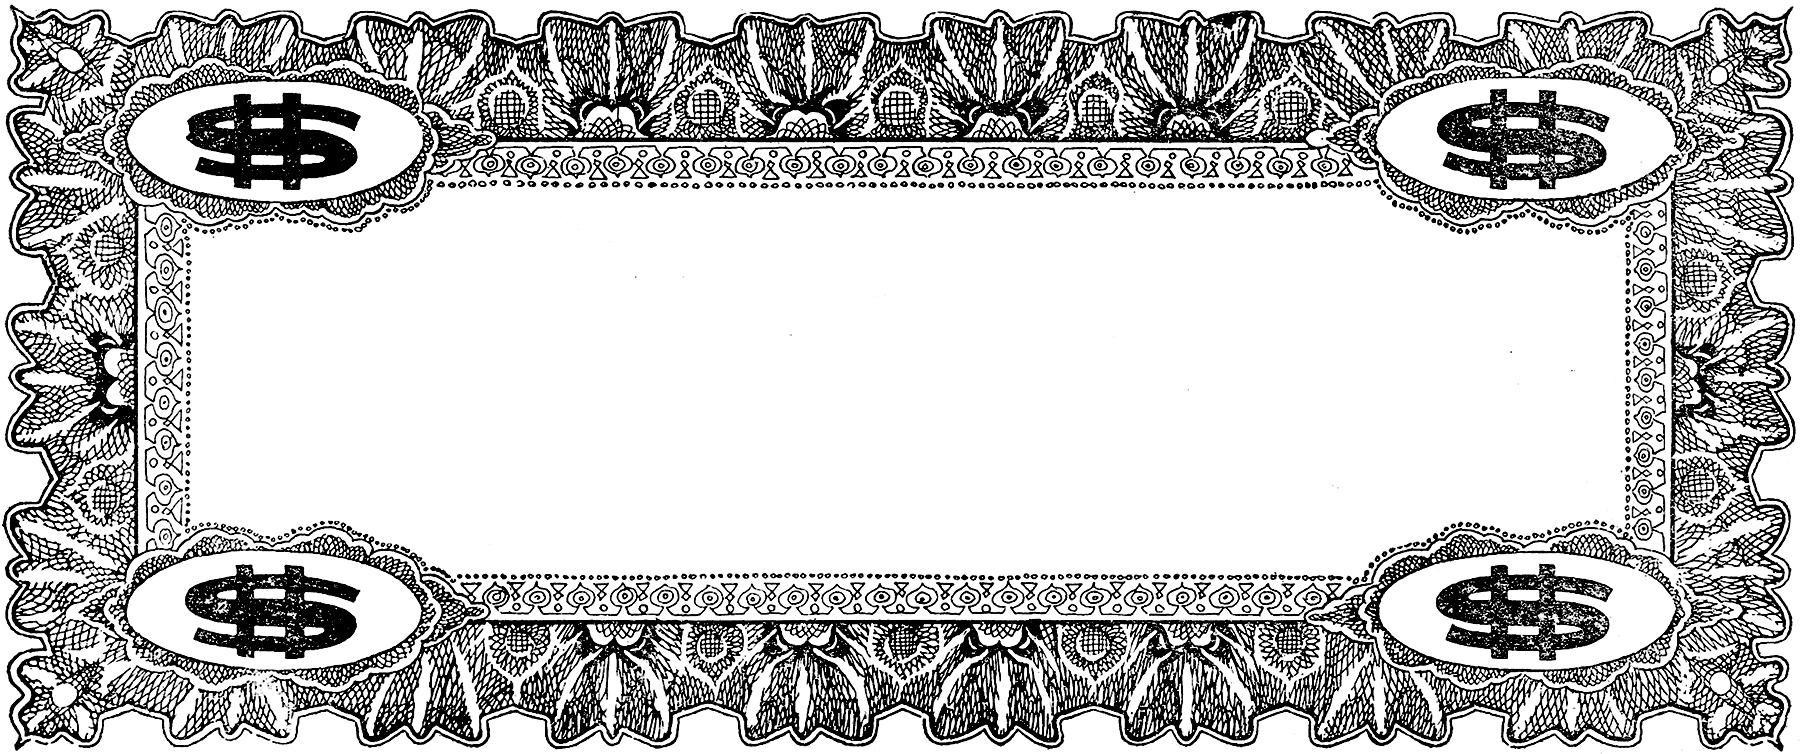 Vintage Coupon Frame Image! - The Graphics Fairy